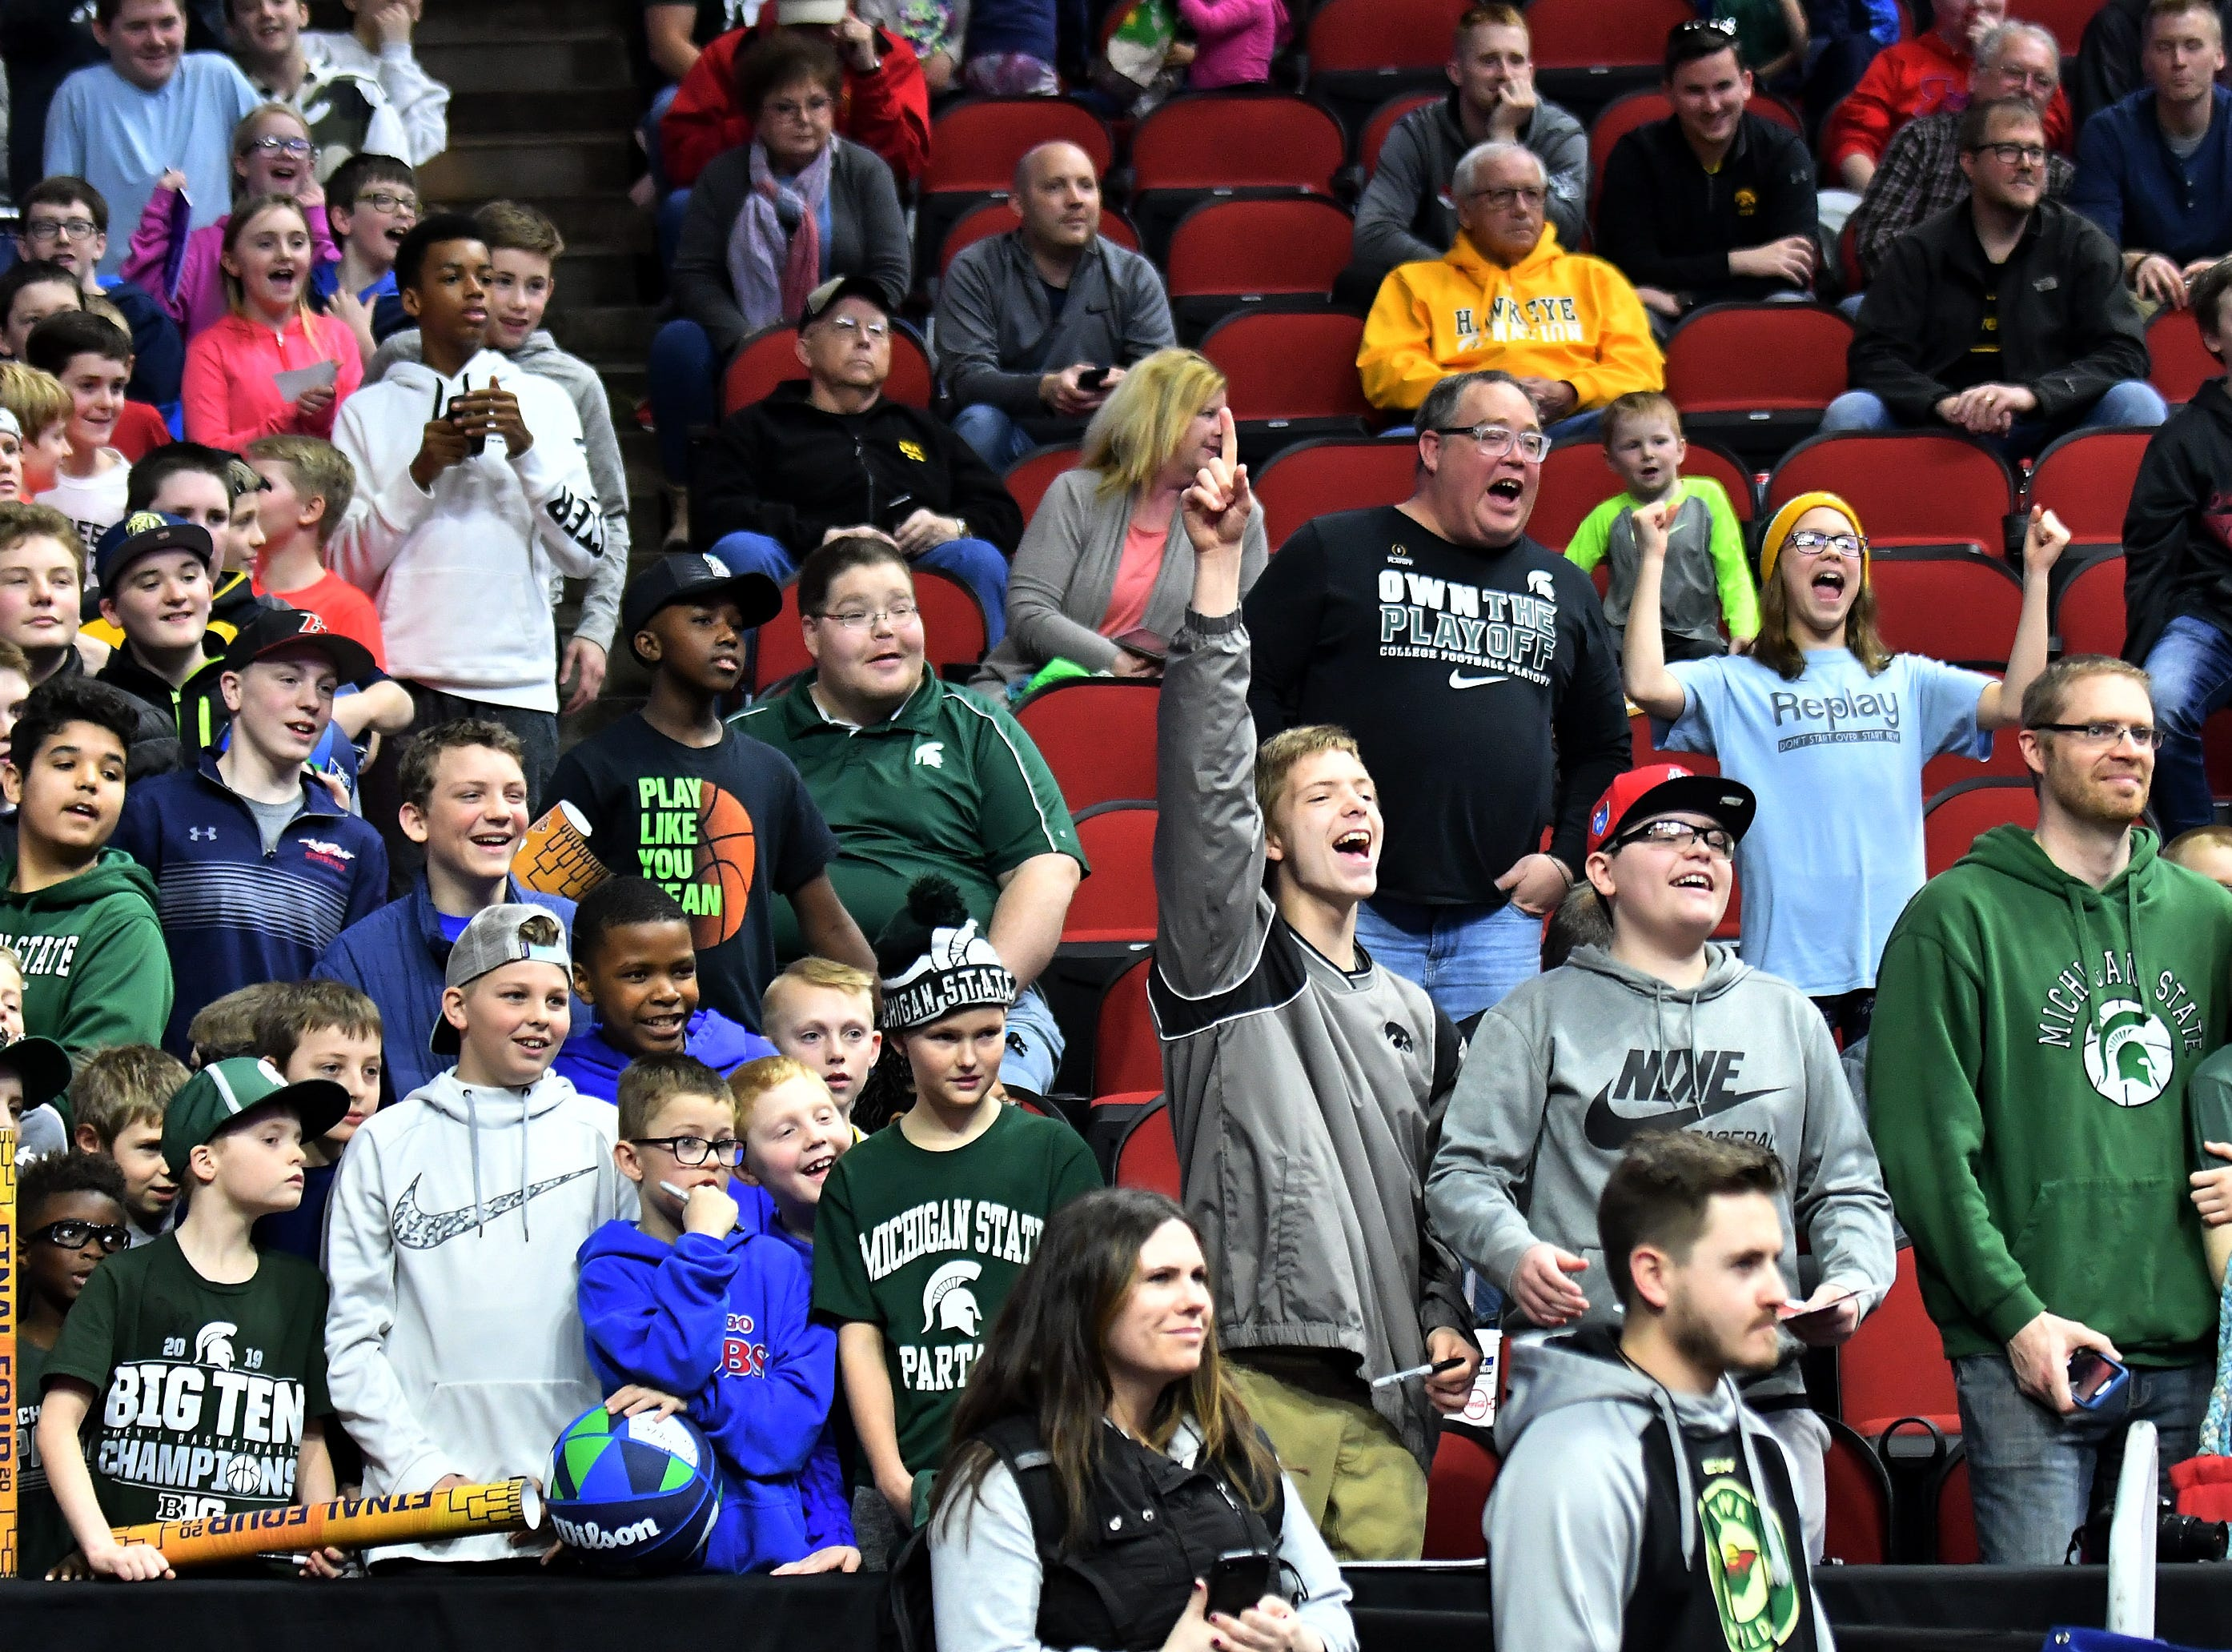 Michigan State fans watch the Spartans practice in Des Moines, Iowa.